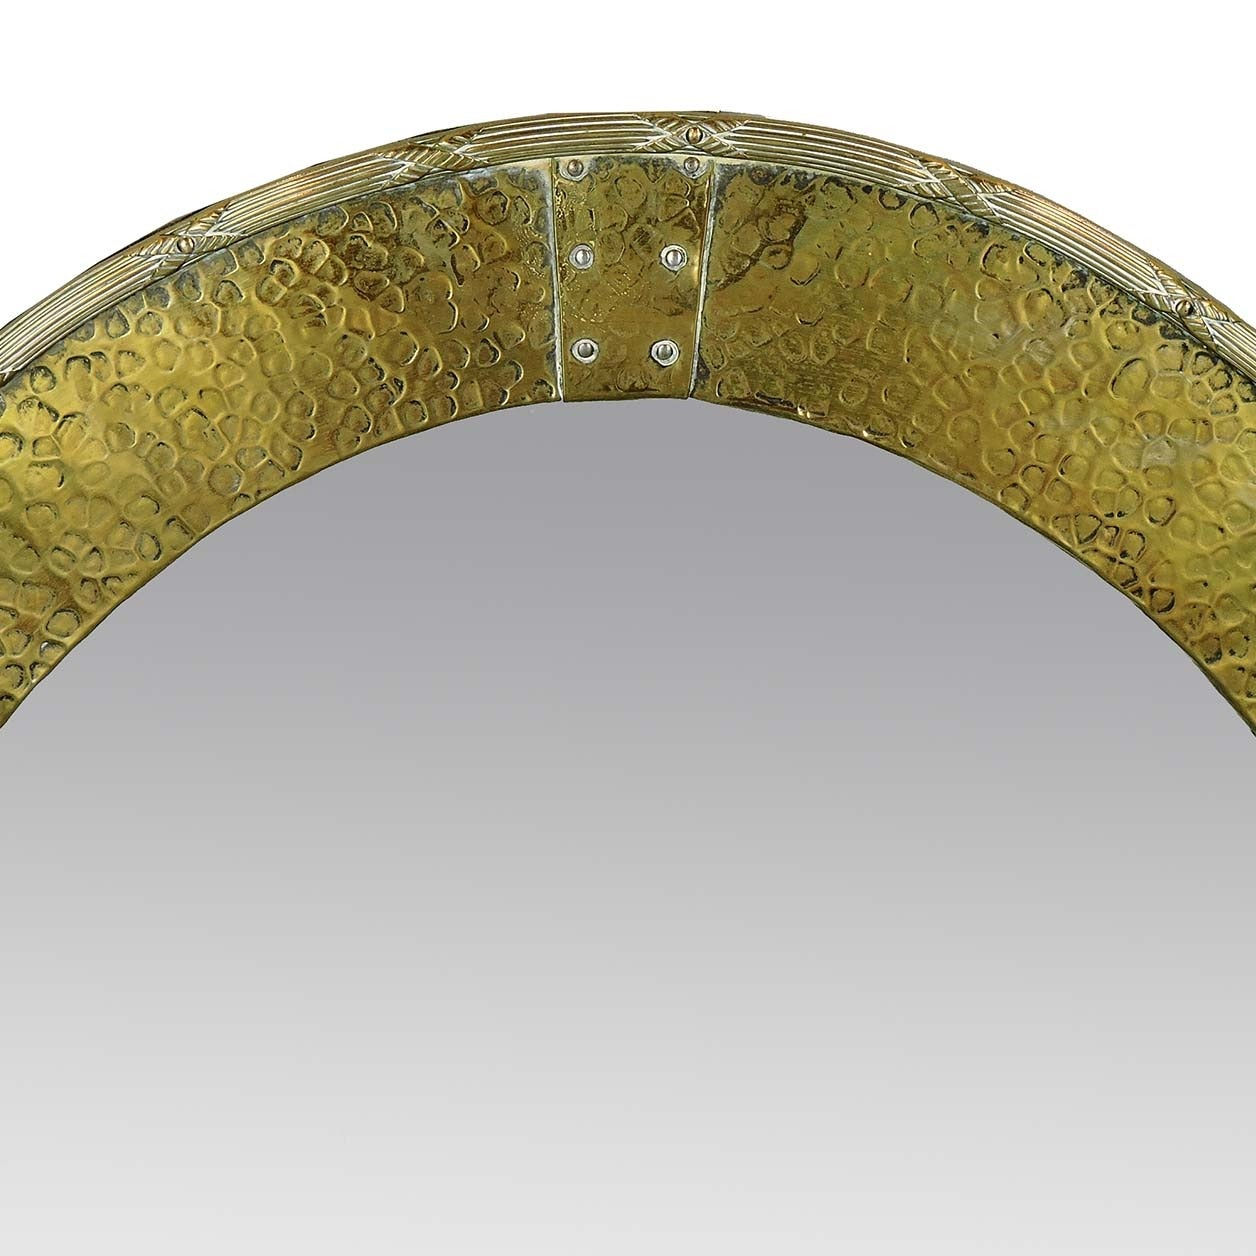 Arts and crafts mirrors - English Arts Crafts Hammered Brass Oval Mirror 2